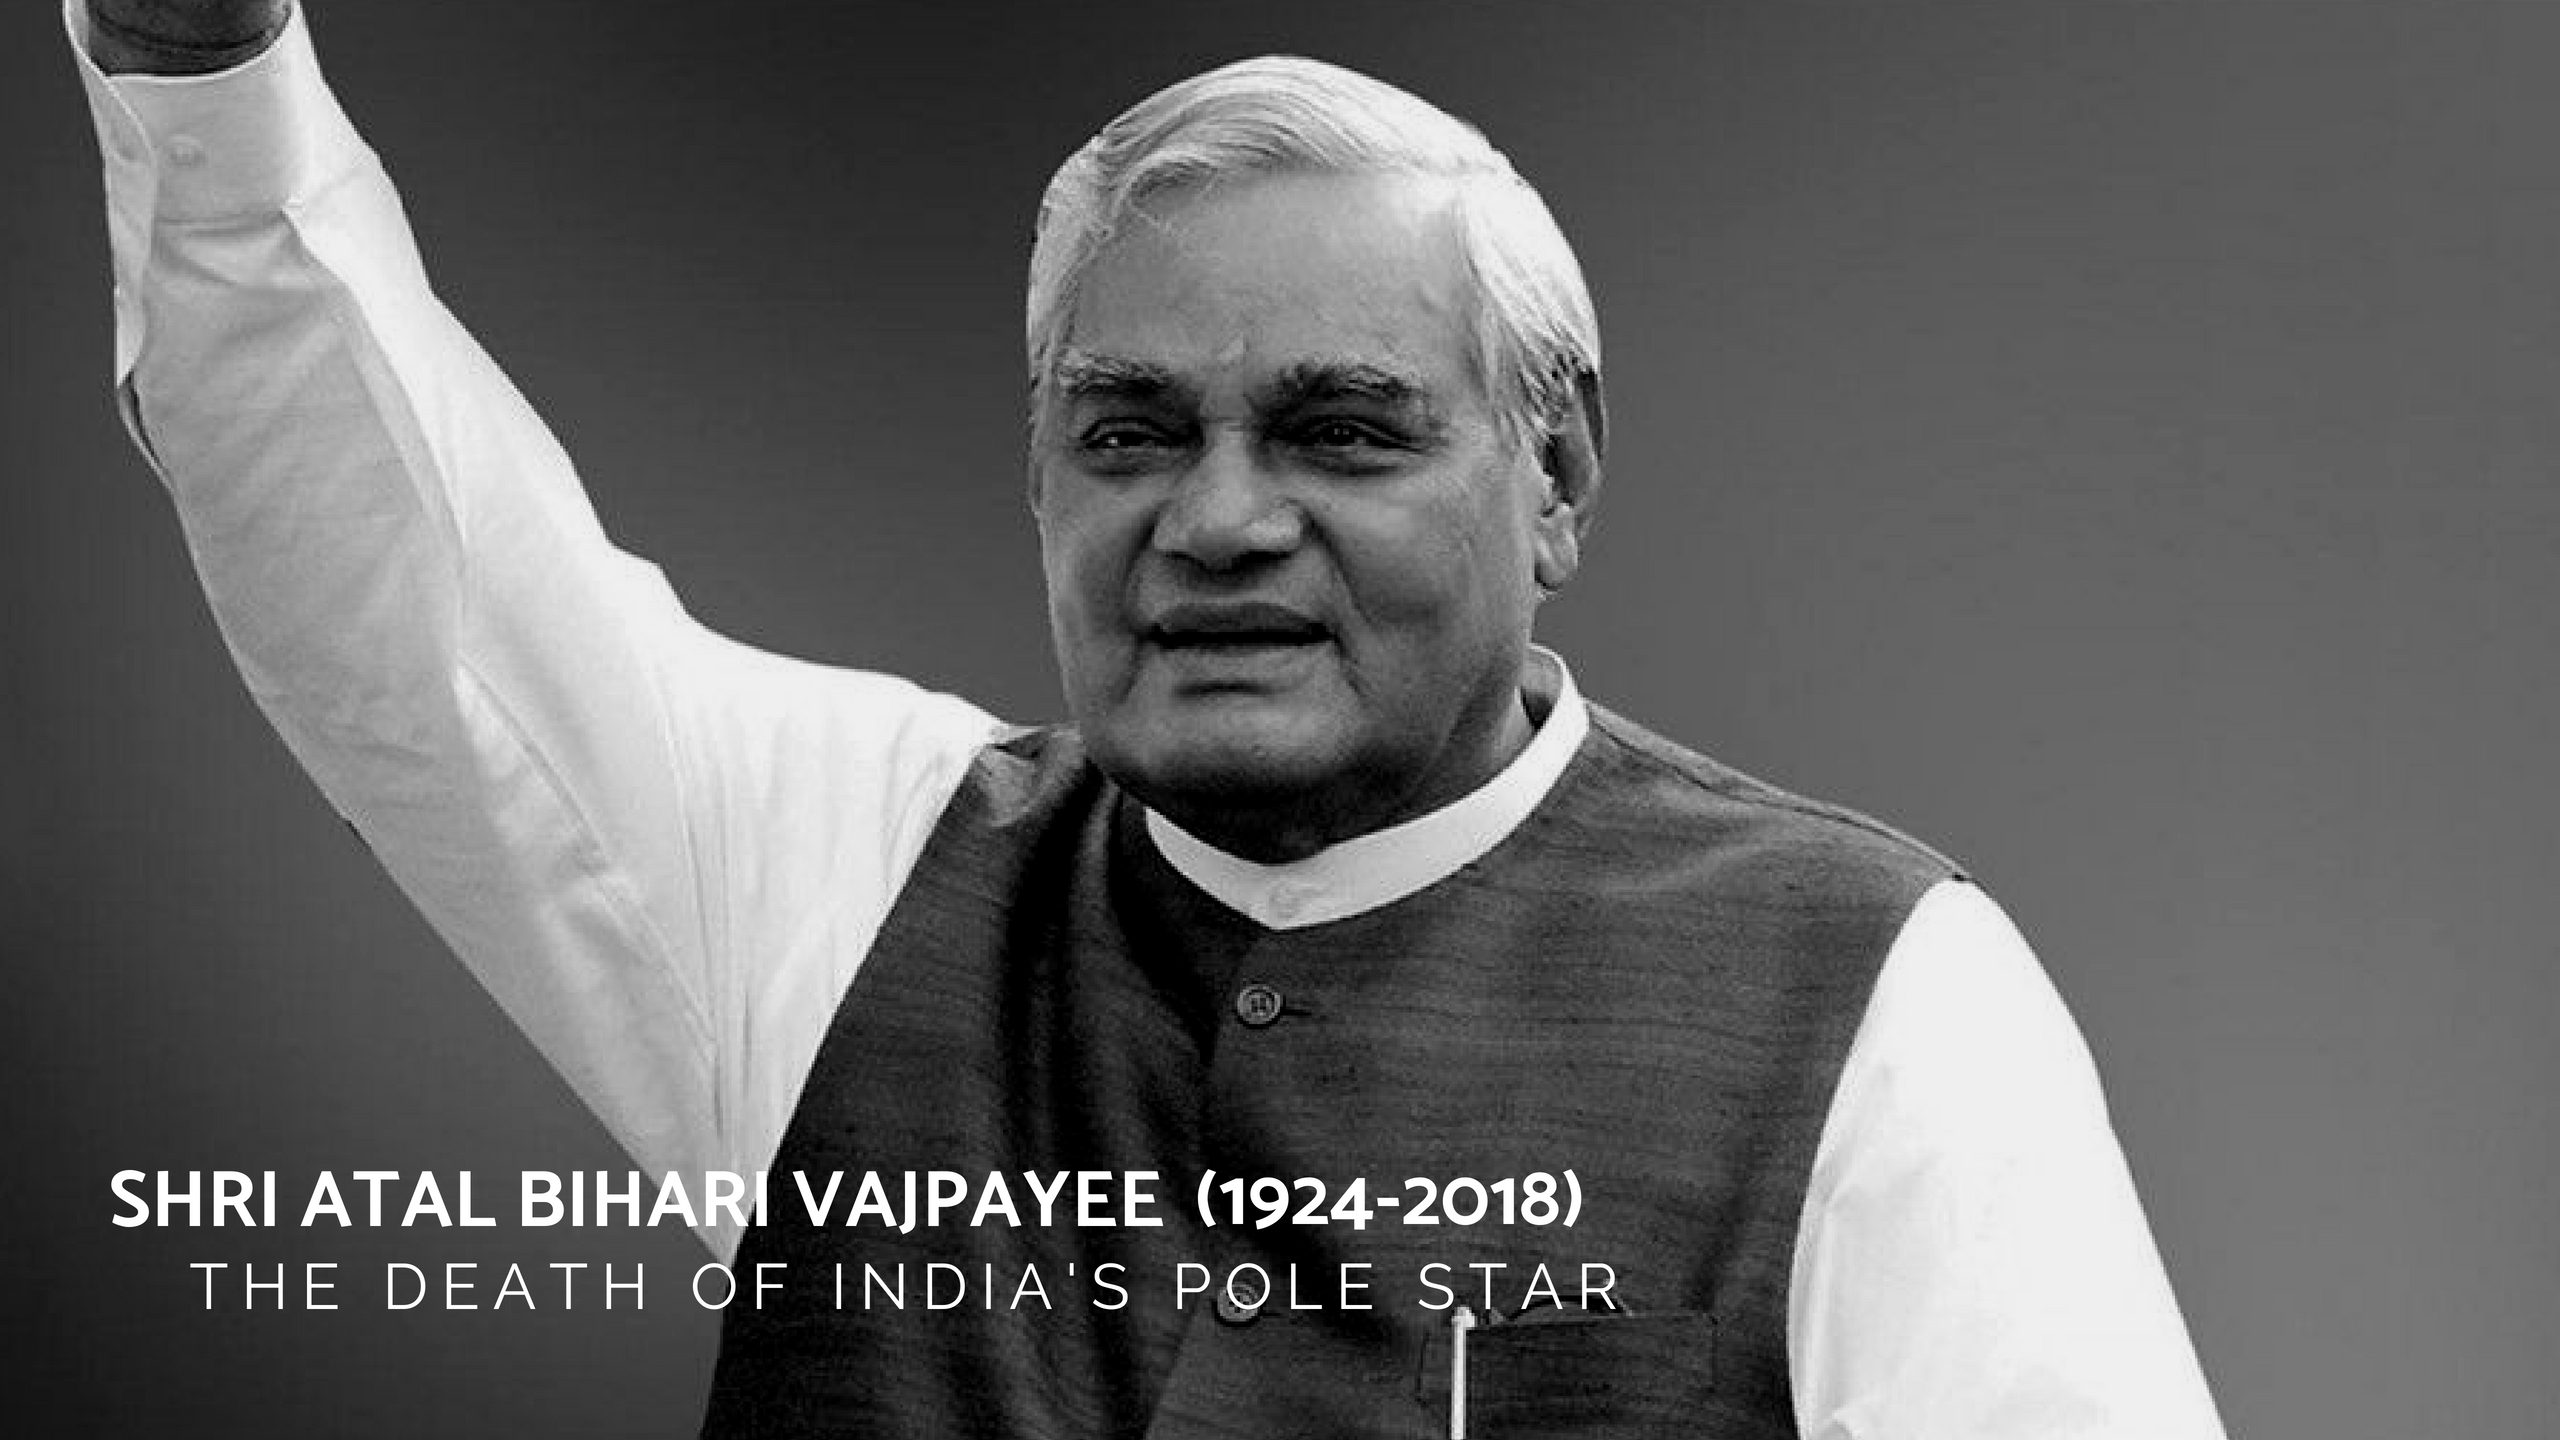 Atal Bihari Vajpayee: The Death of India's Pole Star